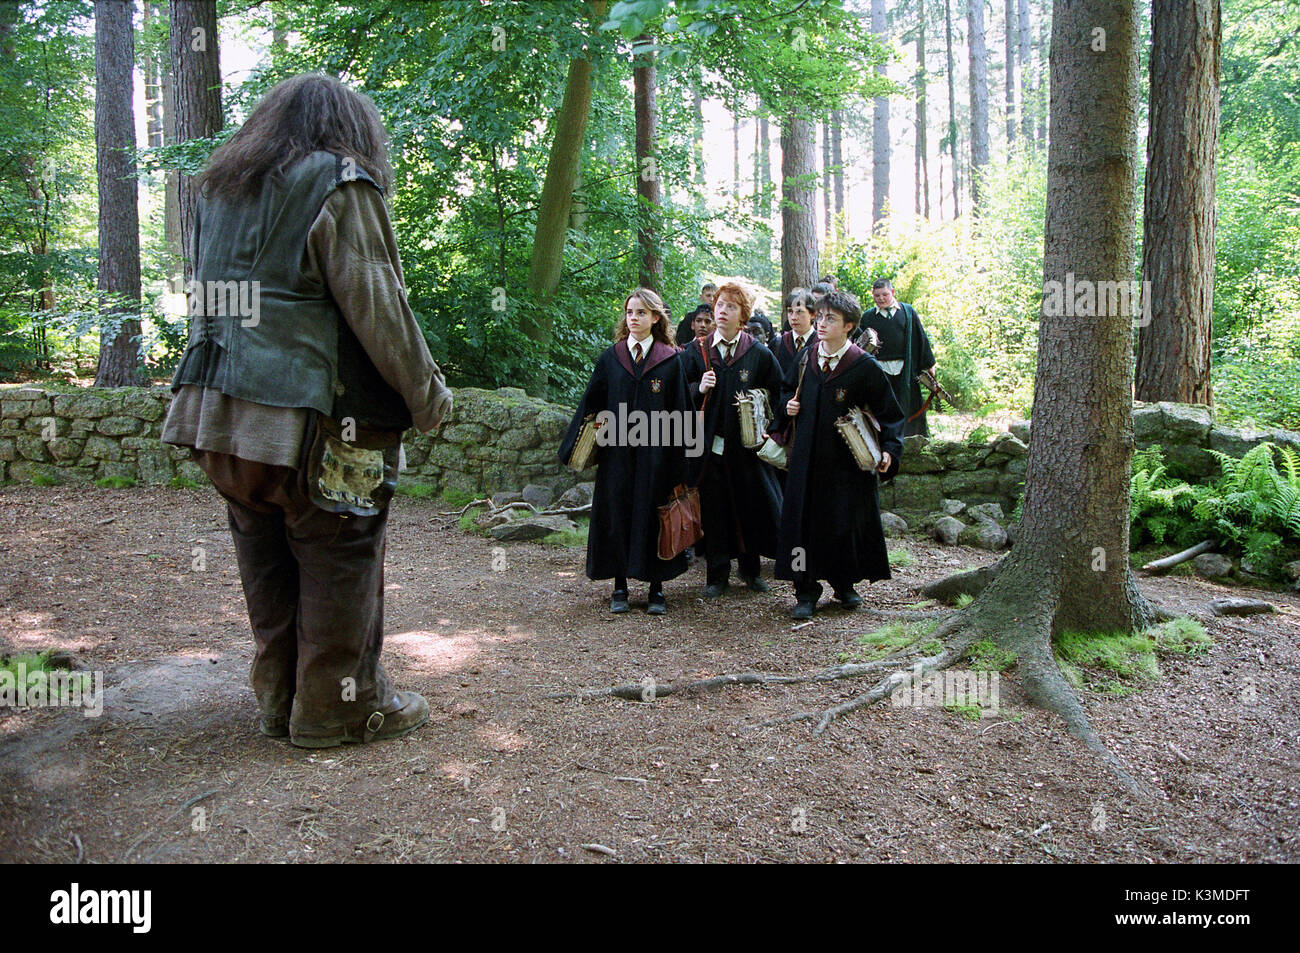 HARRY POTTER AND THE PRISONER OF AZKABAN [BR / US 2004] [L-R] ROBBIE COLTRANE as Hagrid, EMMA WATSON as Hermione Granger, RUPERT GRINT as Ron Weasley, DANIEL RADCLIFFE as Harry Potter     Date: 2004 - Stock Image